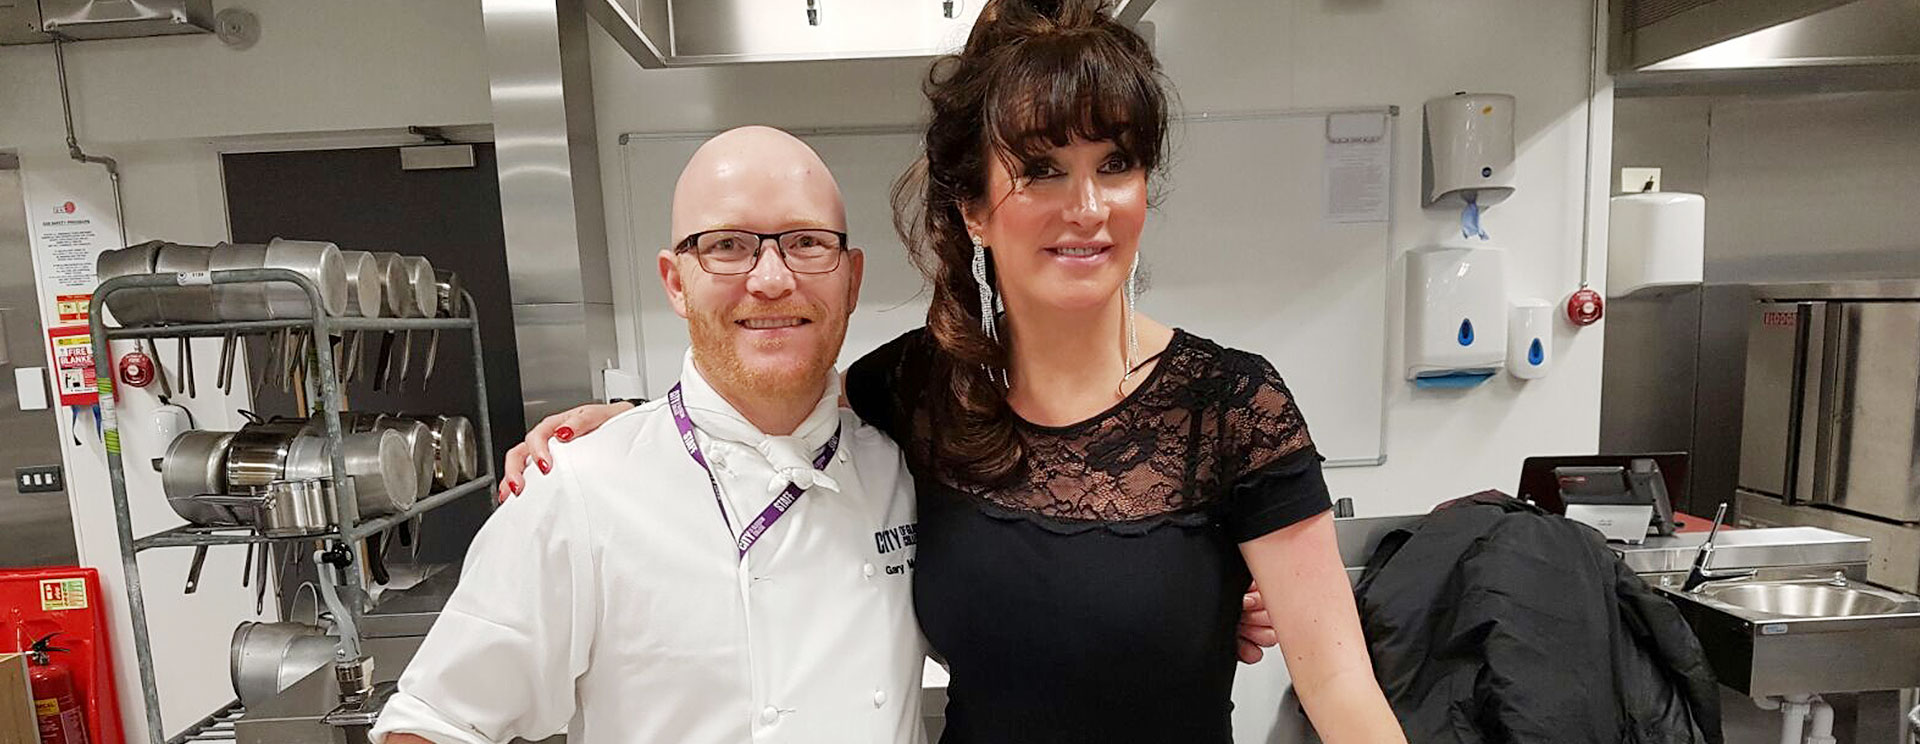 Gary Maclean - Events - Award winning Chef and Winner of MasterChef The Professionals